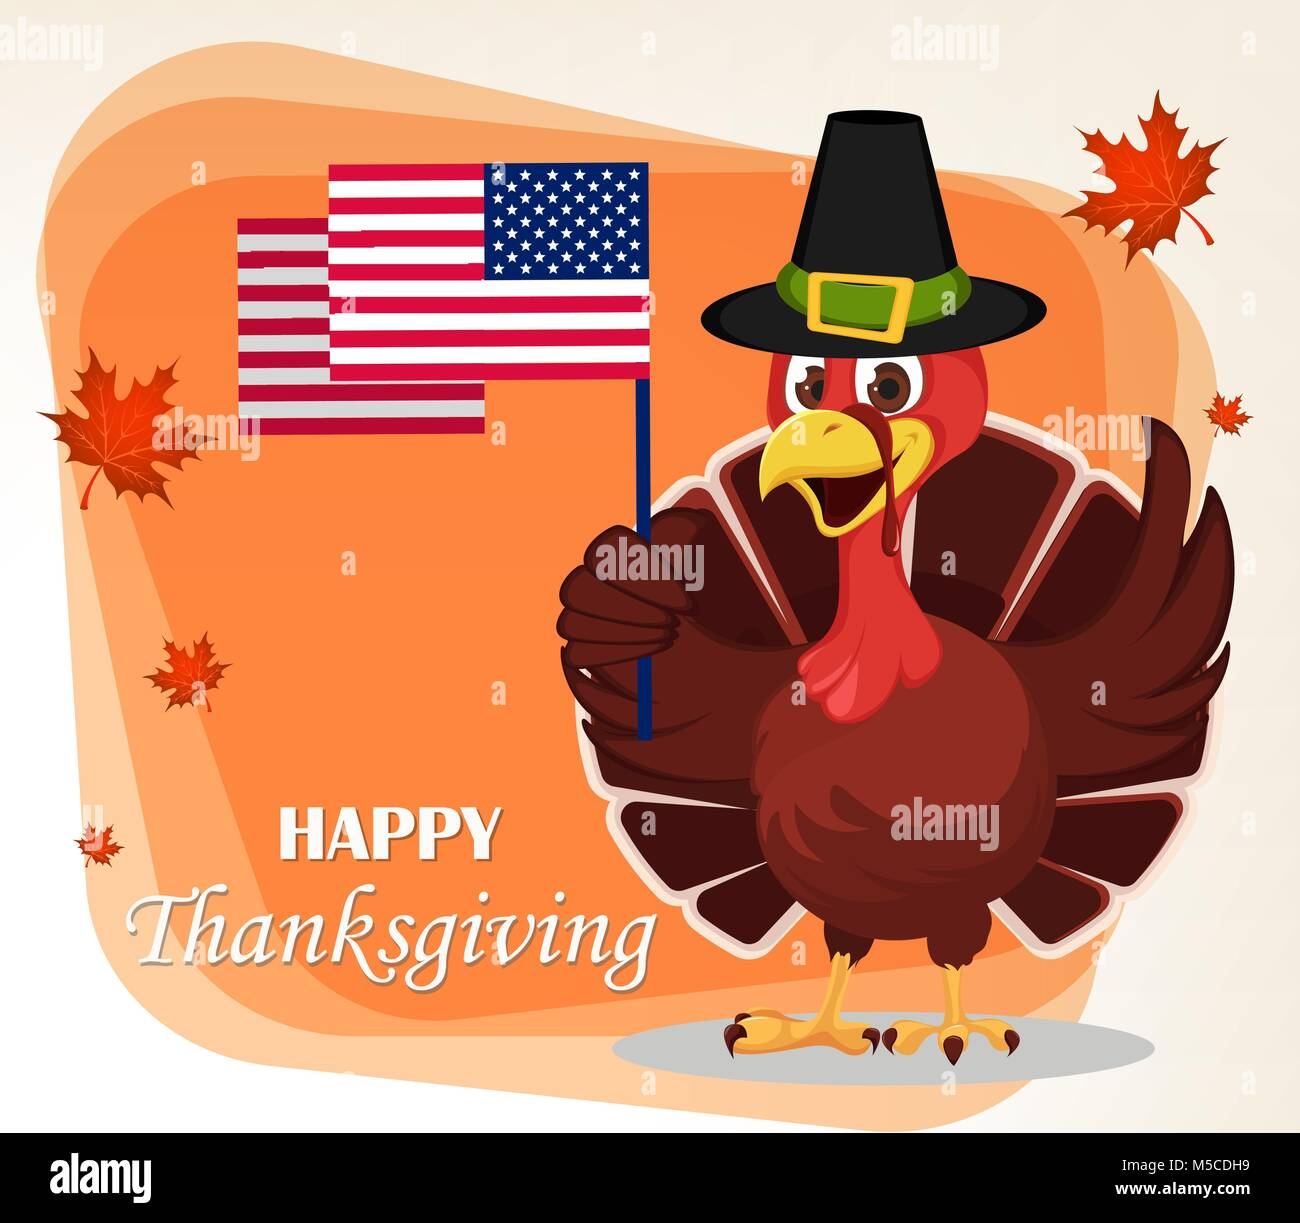 Thanksgiving greeting card with a turkey bird wearing a pilgrim hat thanksgiving greeting card with a turkey bird wearing a pilgrim hat and holding usa flag funny cartoon character for holiday vector illustration wit m4hsunfo